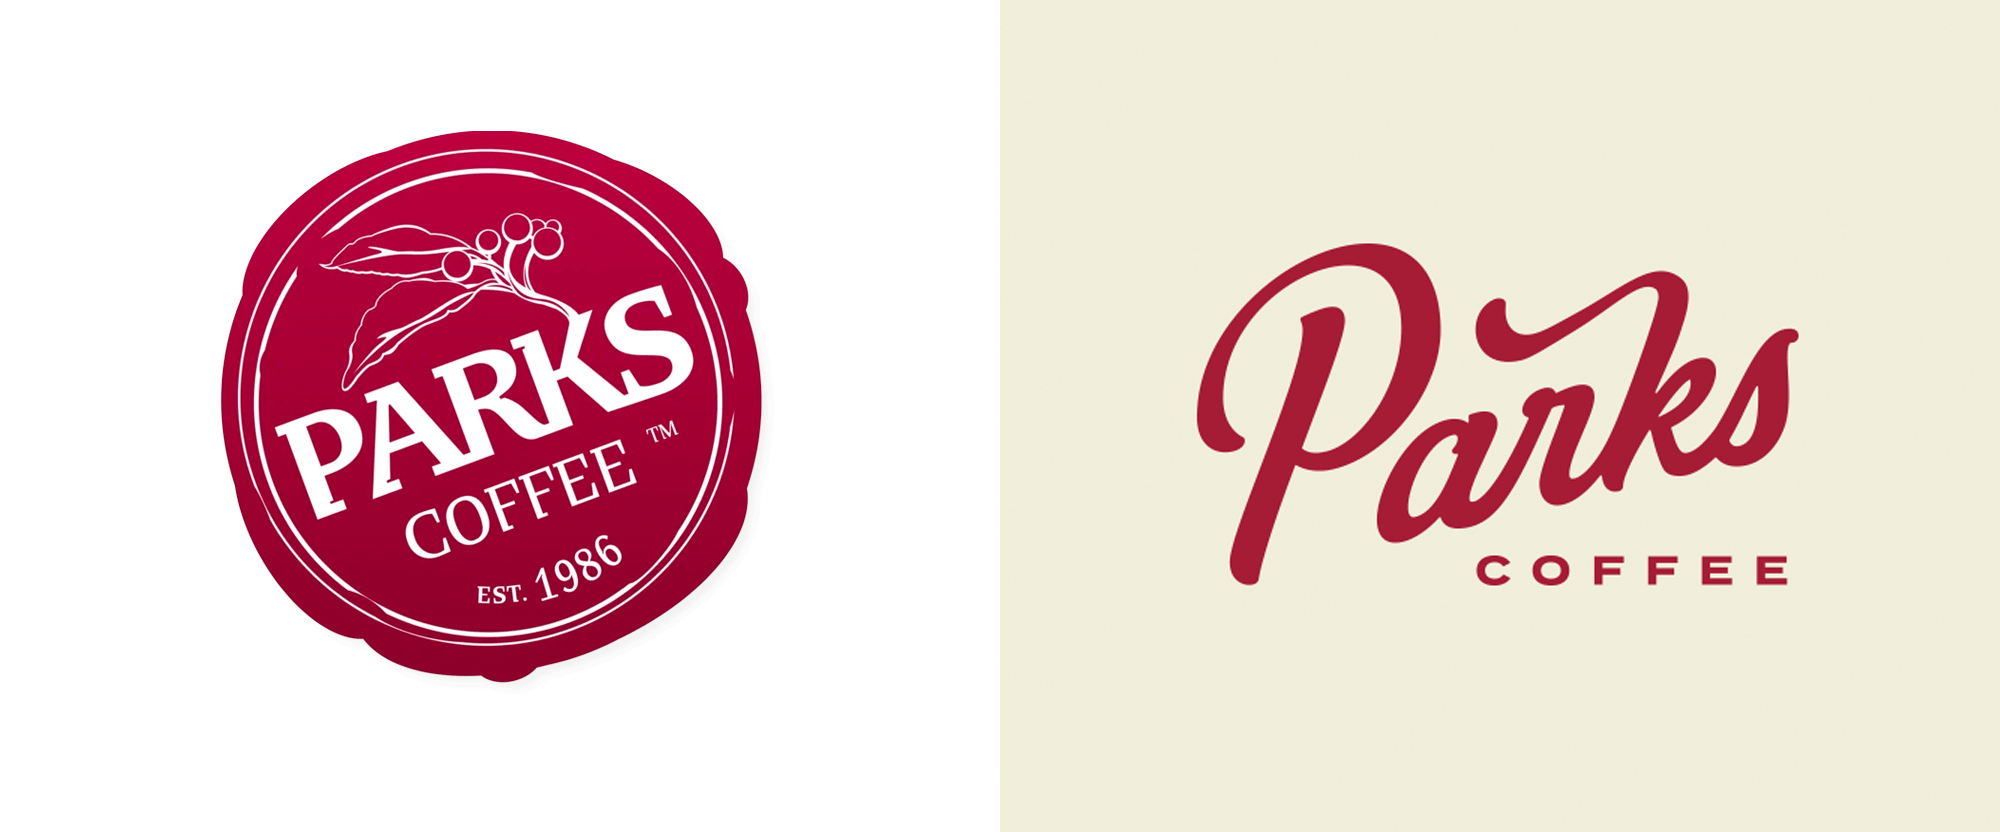 New Logo and Identity for Parks Coffee by The Brand Hatchery